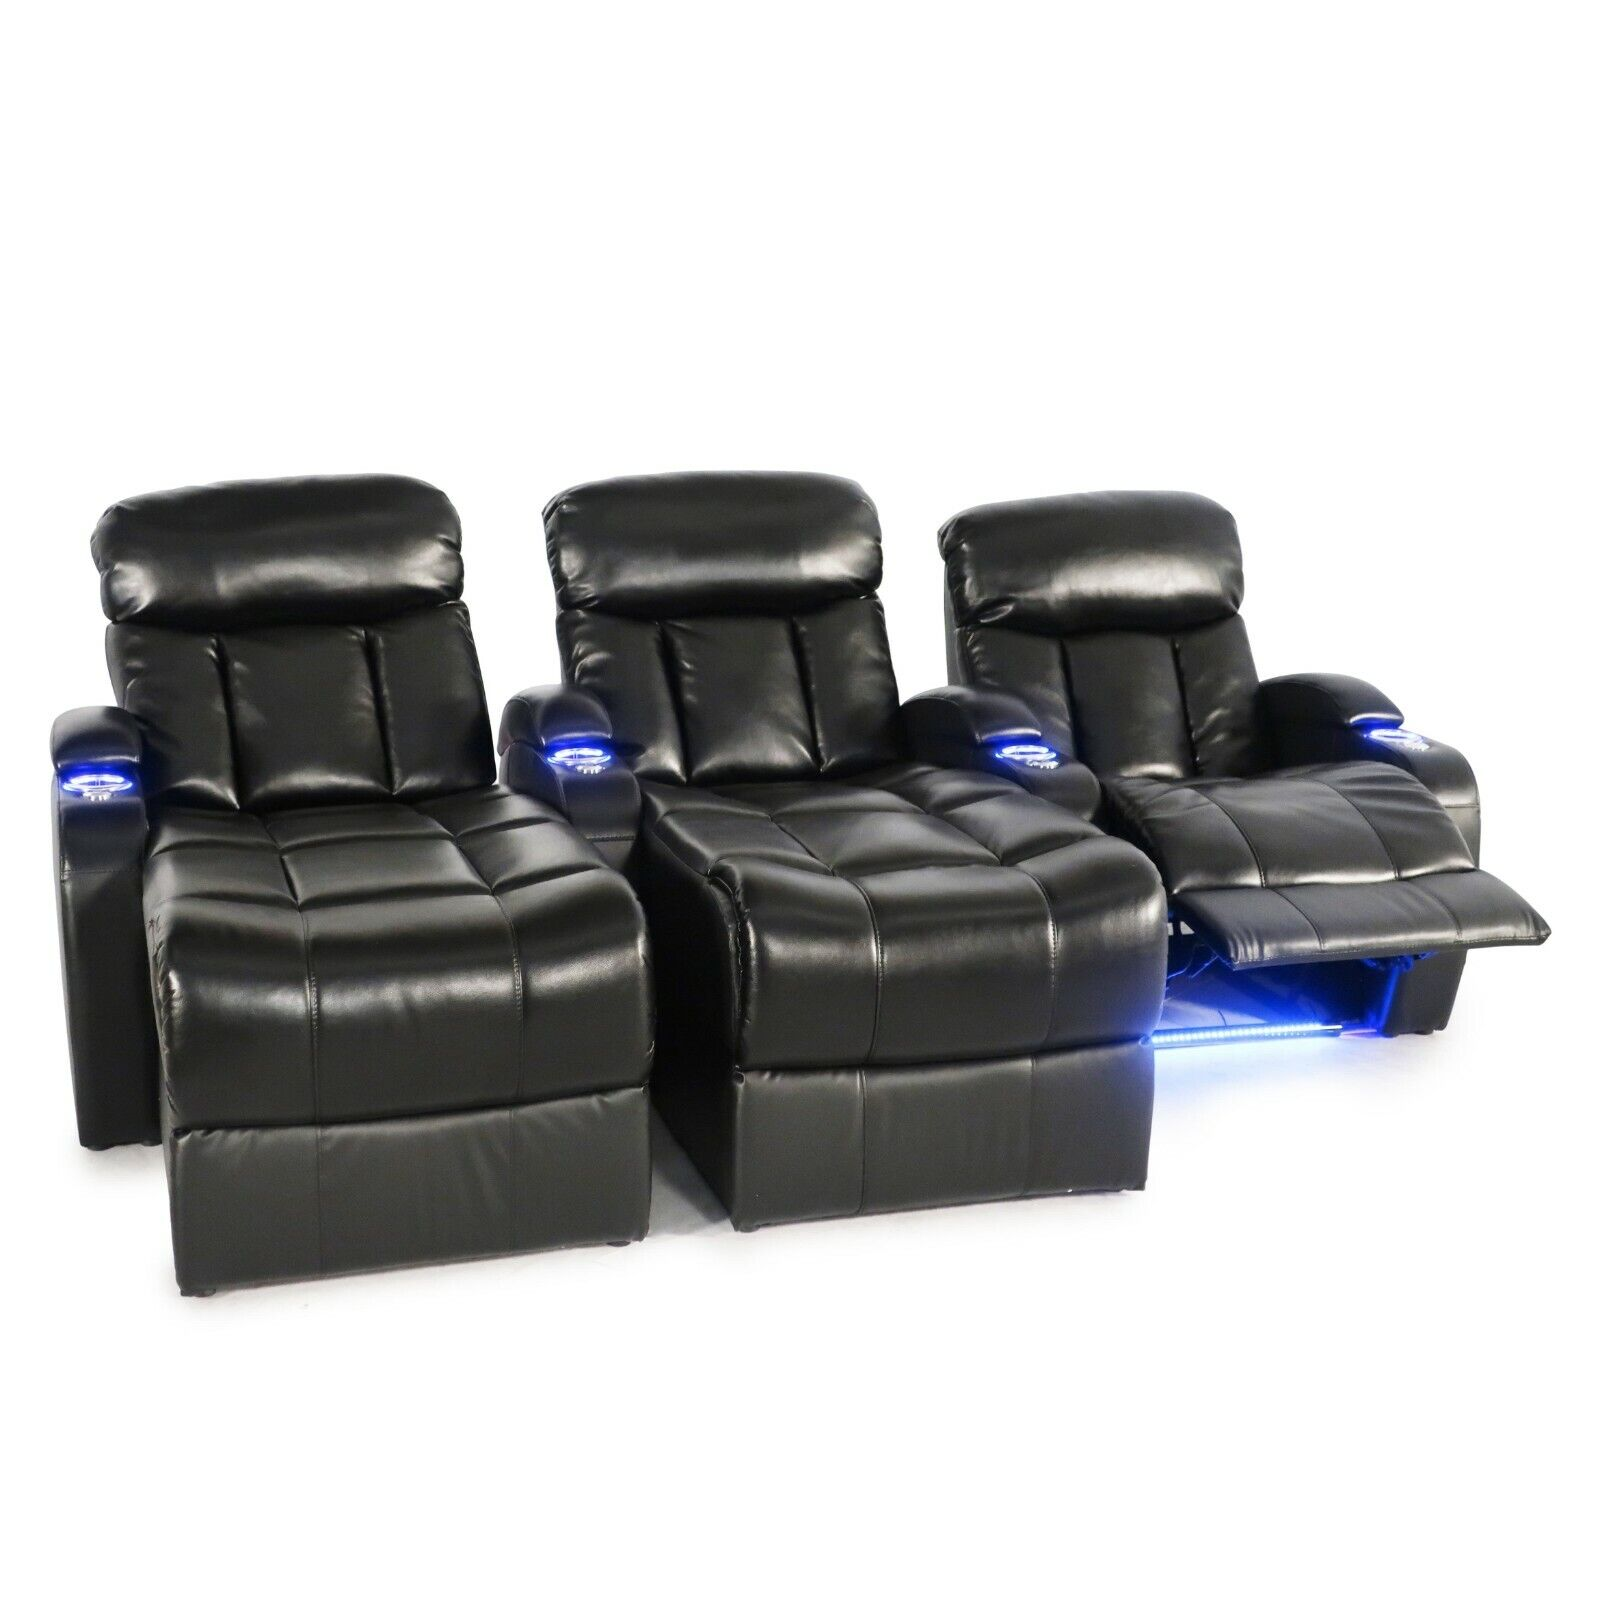 grenada home theater seating black leather gel